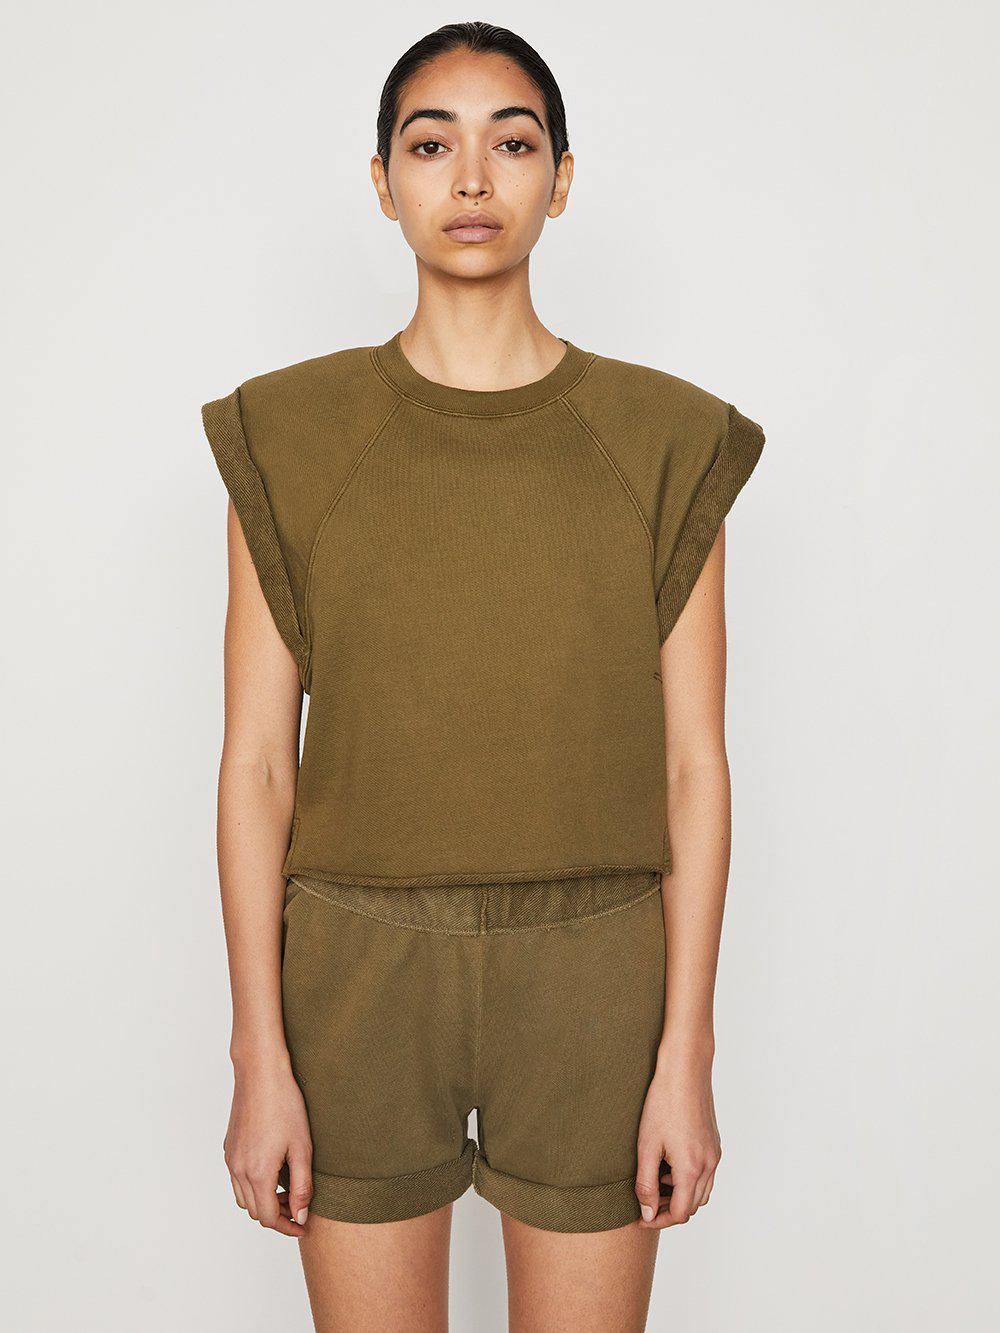 Rolled Up Sweatshirt -- Washed Moss